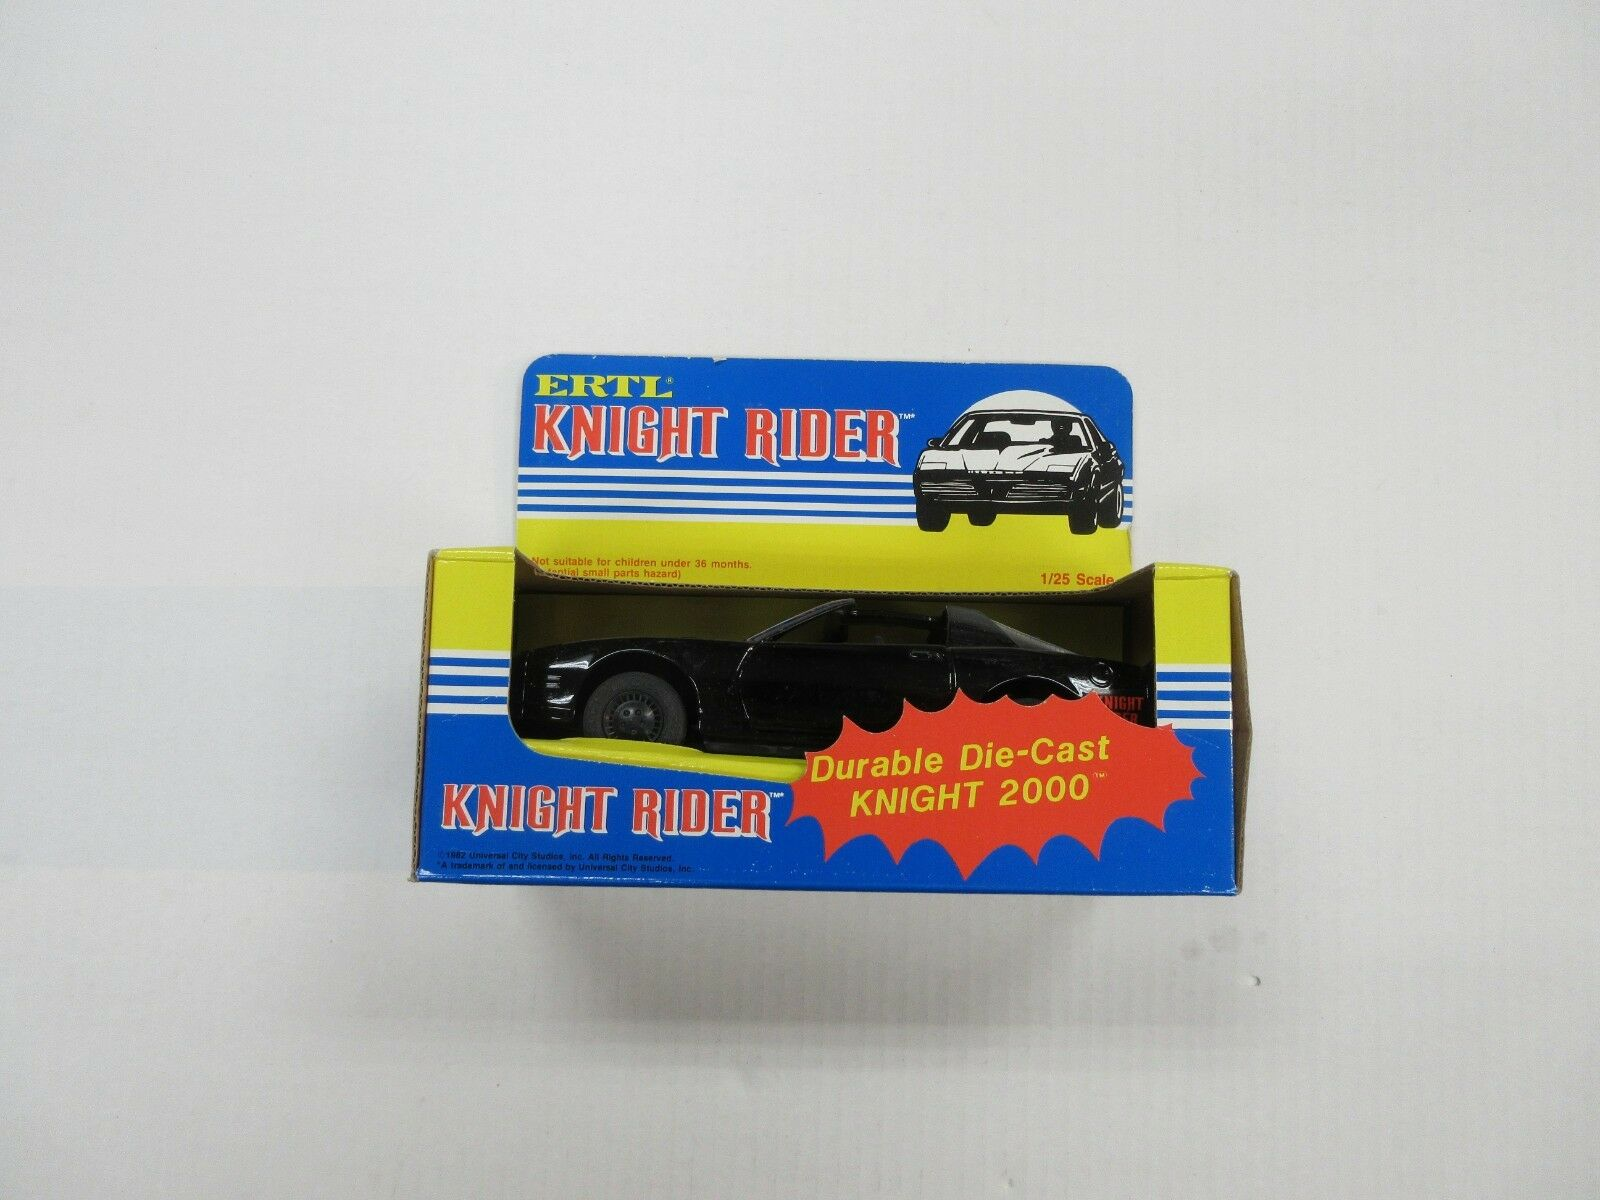 1982 ERTL KNIGHT RIDER 2000 DIE-CAST 1/25 SCALE CAR W/ BOX DAVID HASSELHOFF